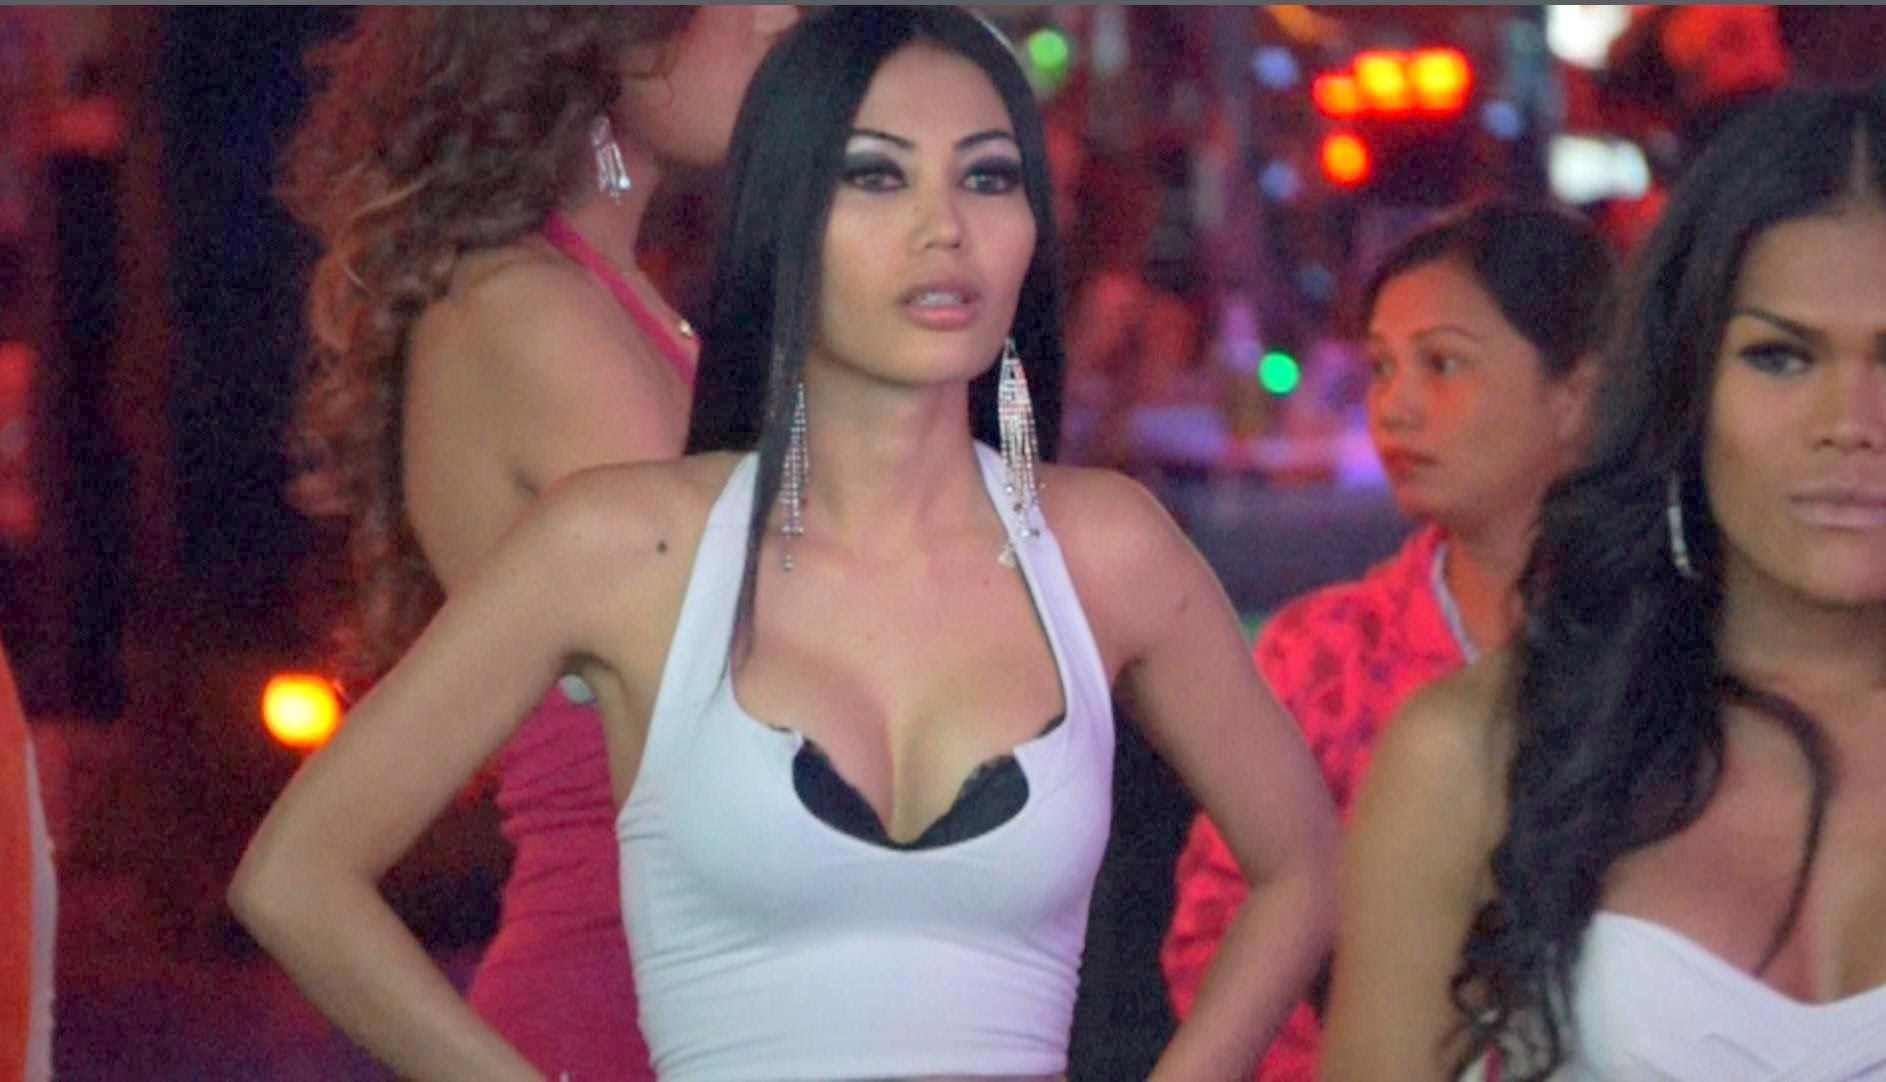 Where to find ladyboys in pattaya